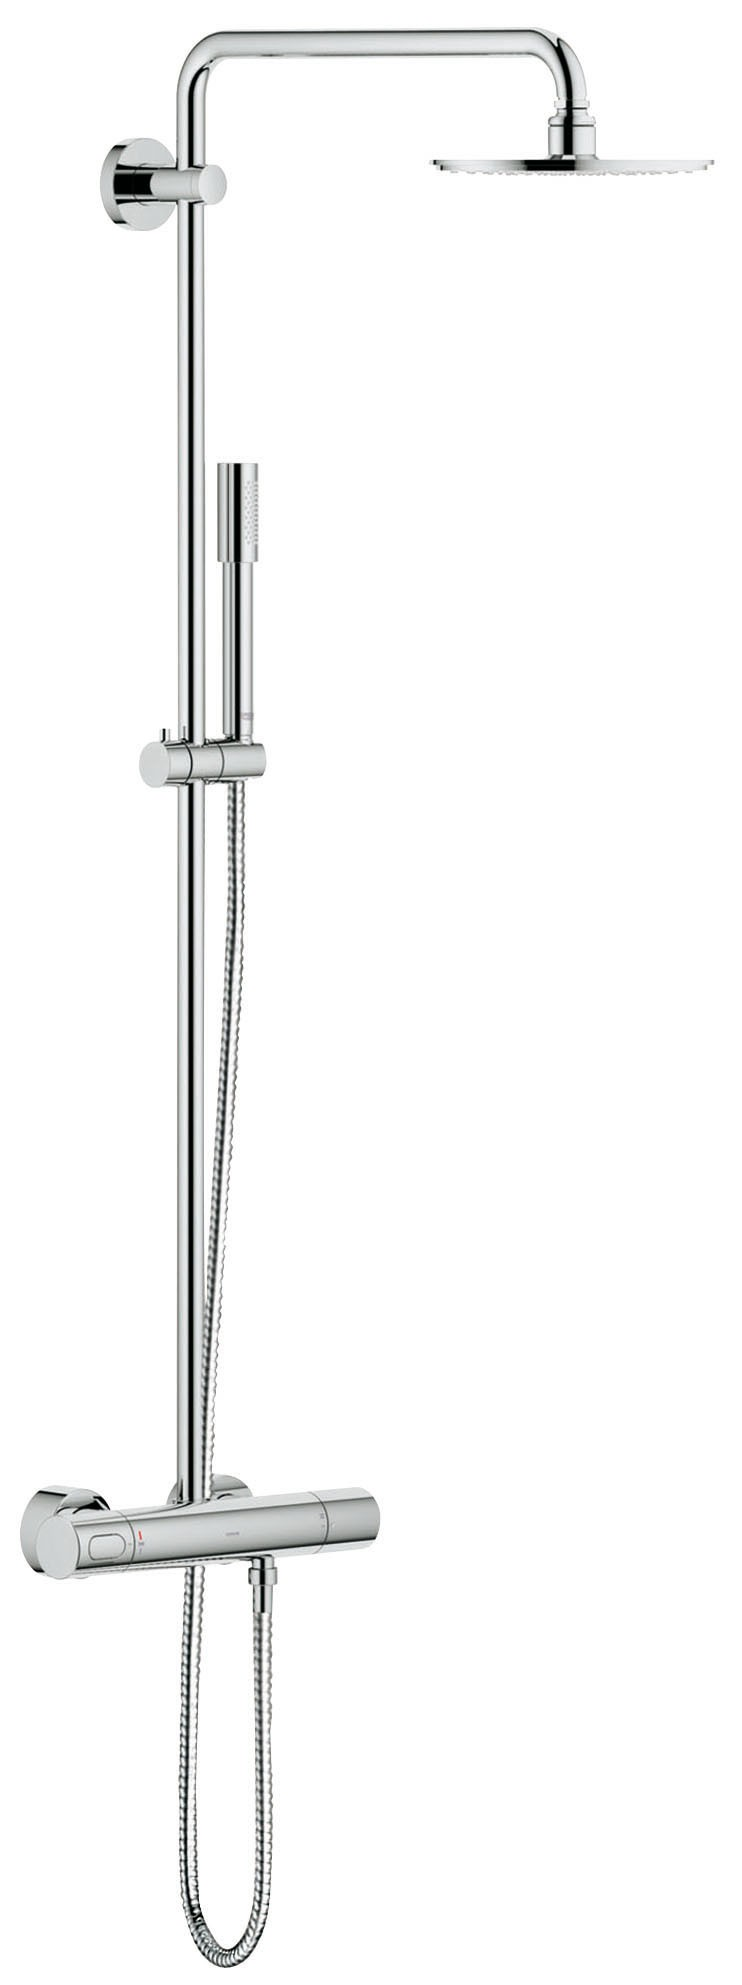 Grohe 27032001 Rainshower, хром (27032001)